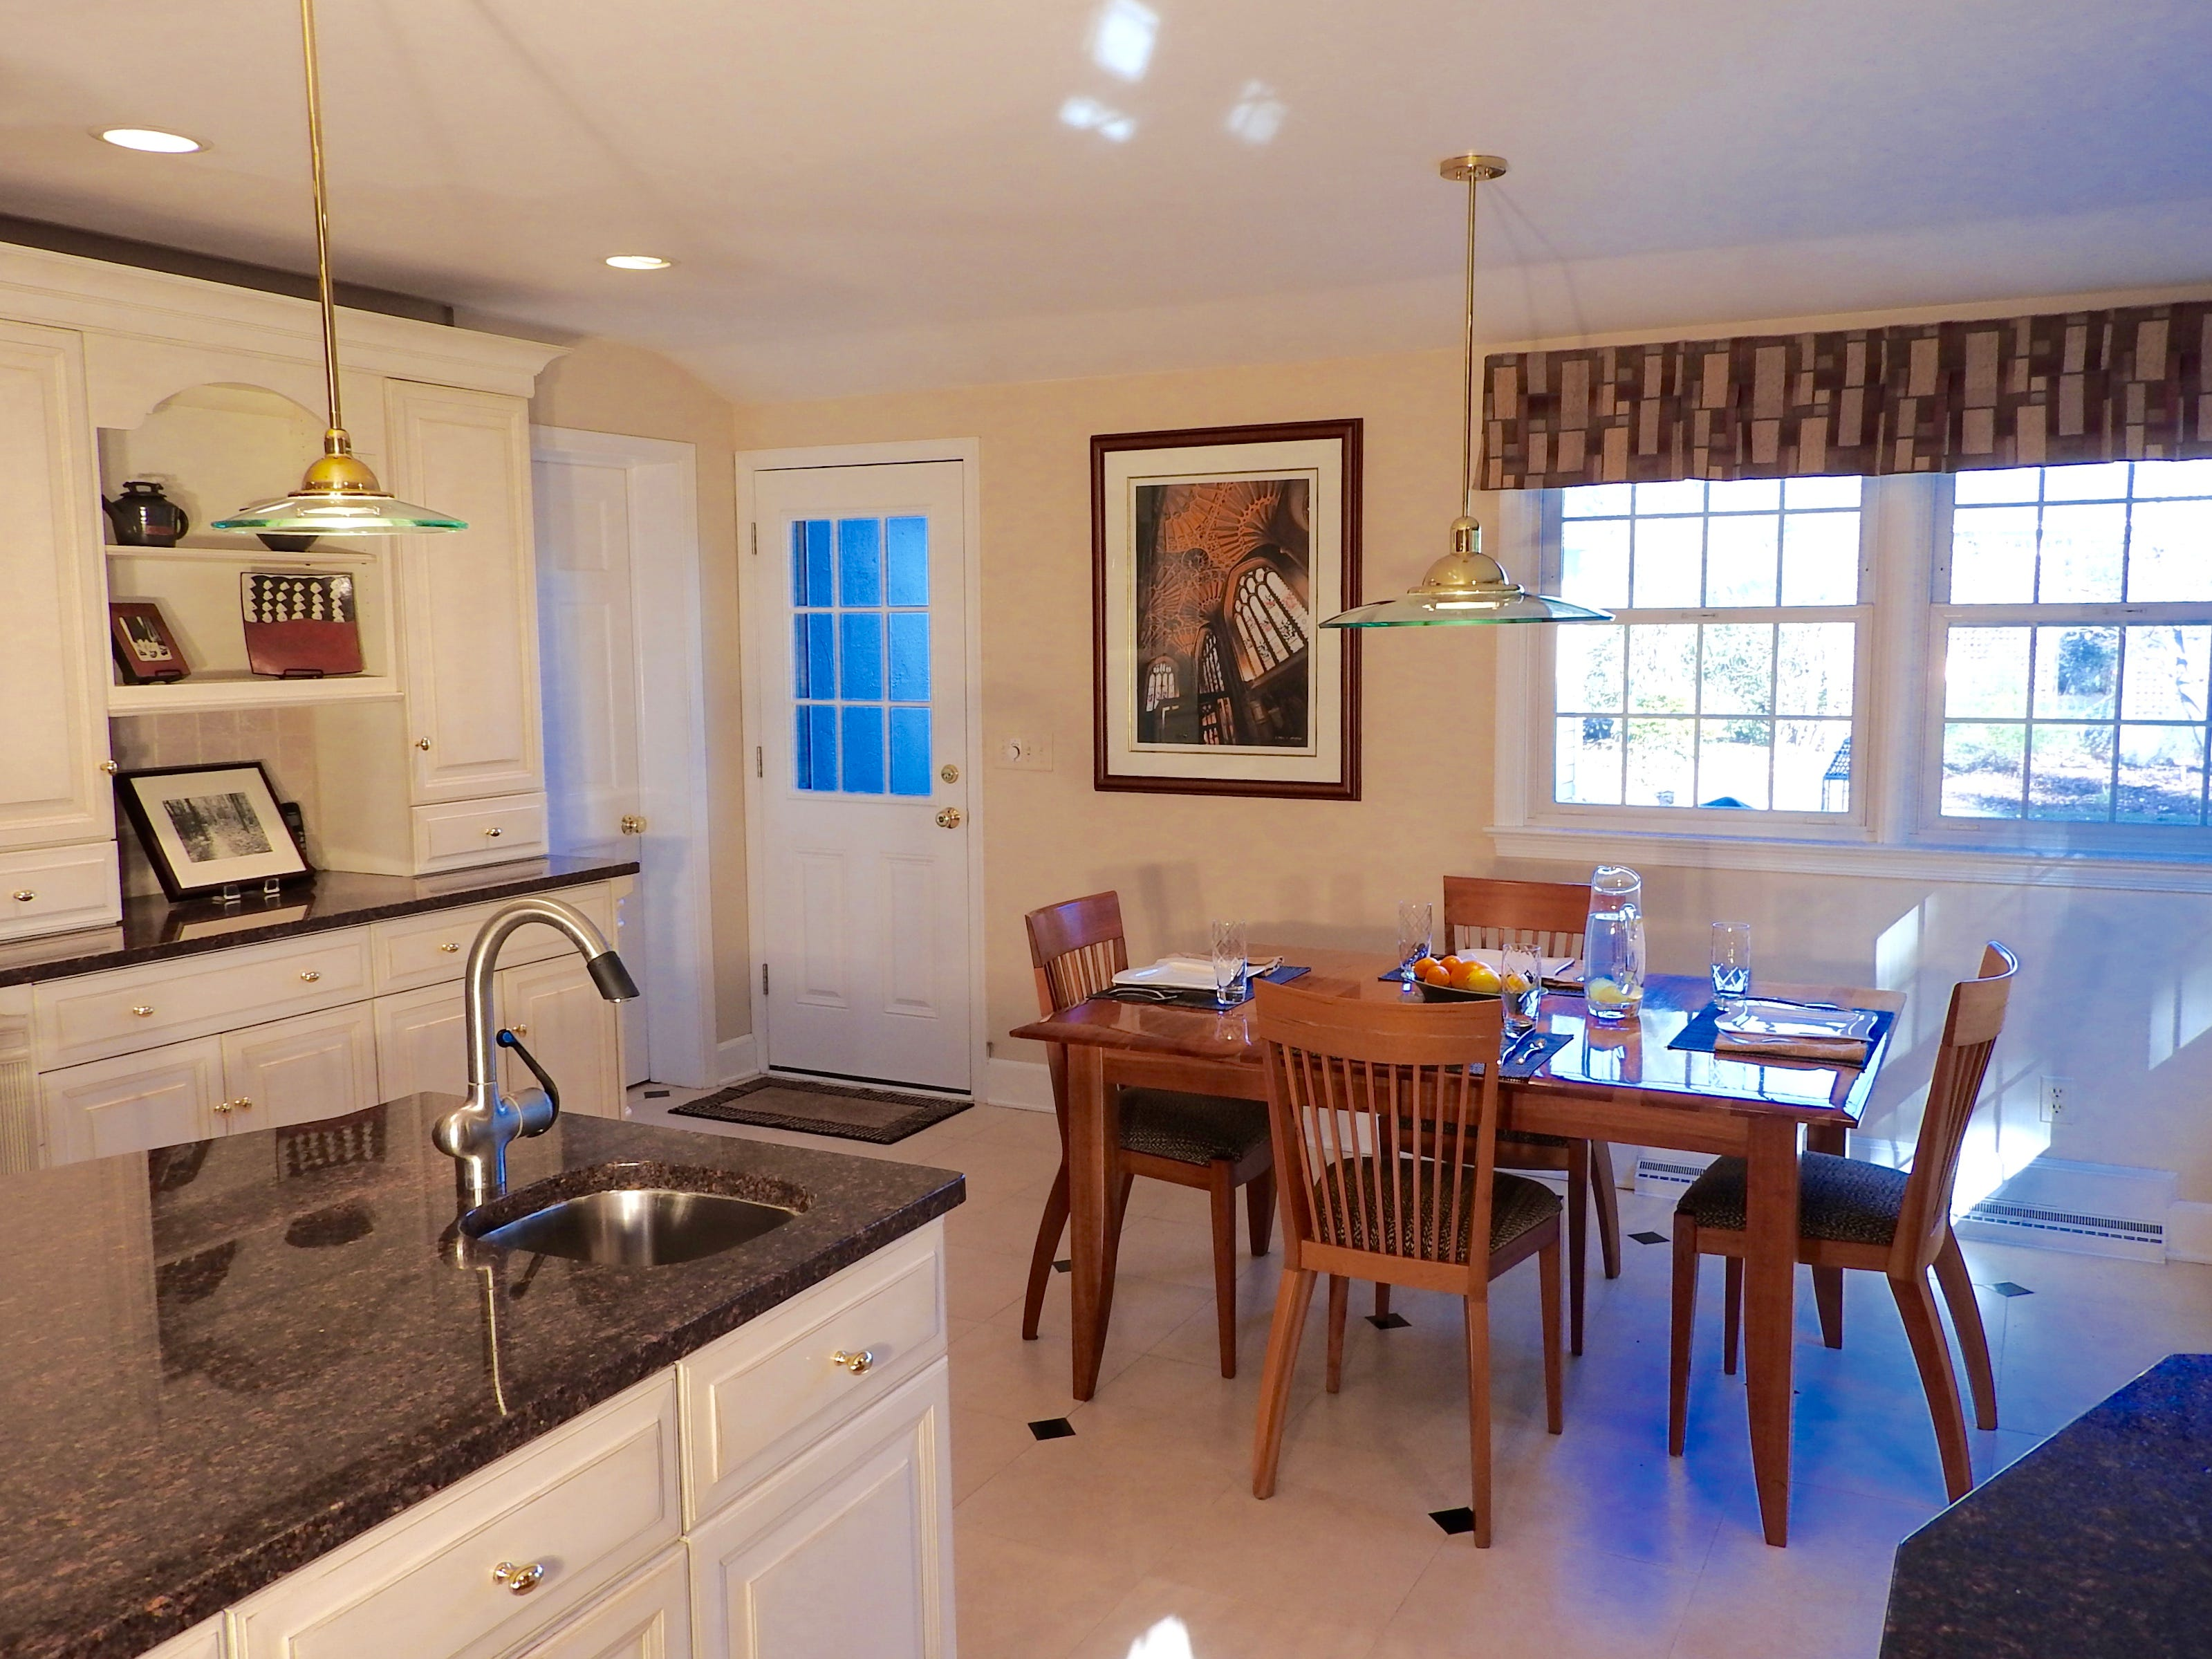 A large eat-in kitchen at 103 Edgewood Road in Alapocas has cherry cabinets,  granite countertops and a breakfast nook.